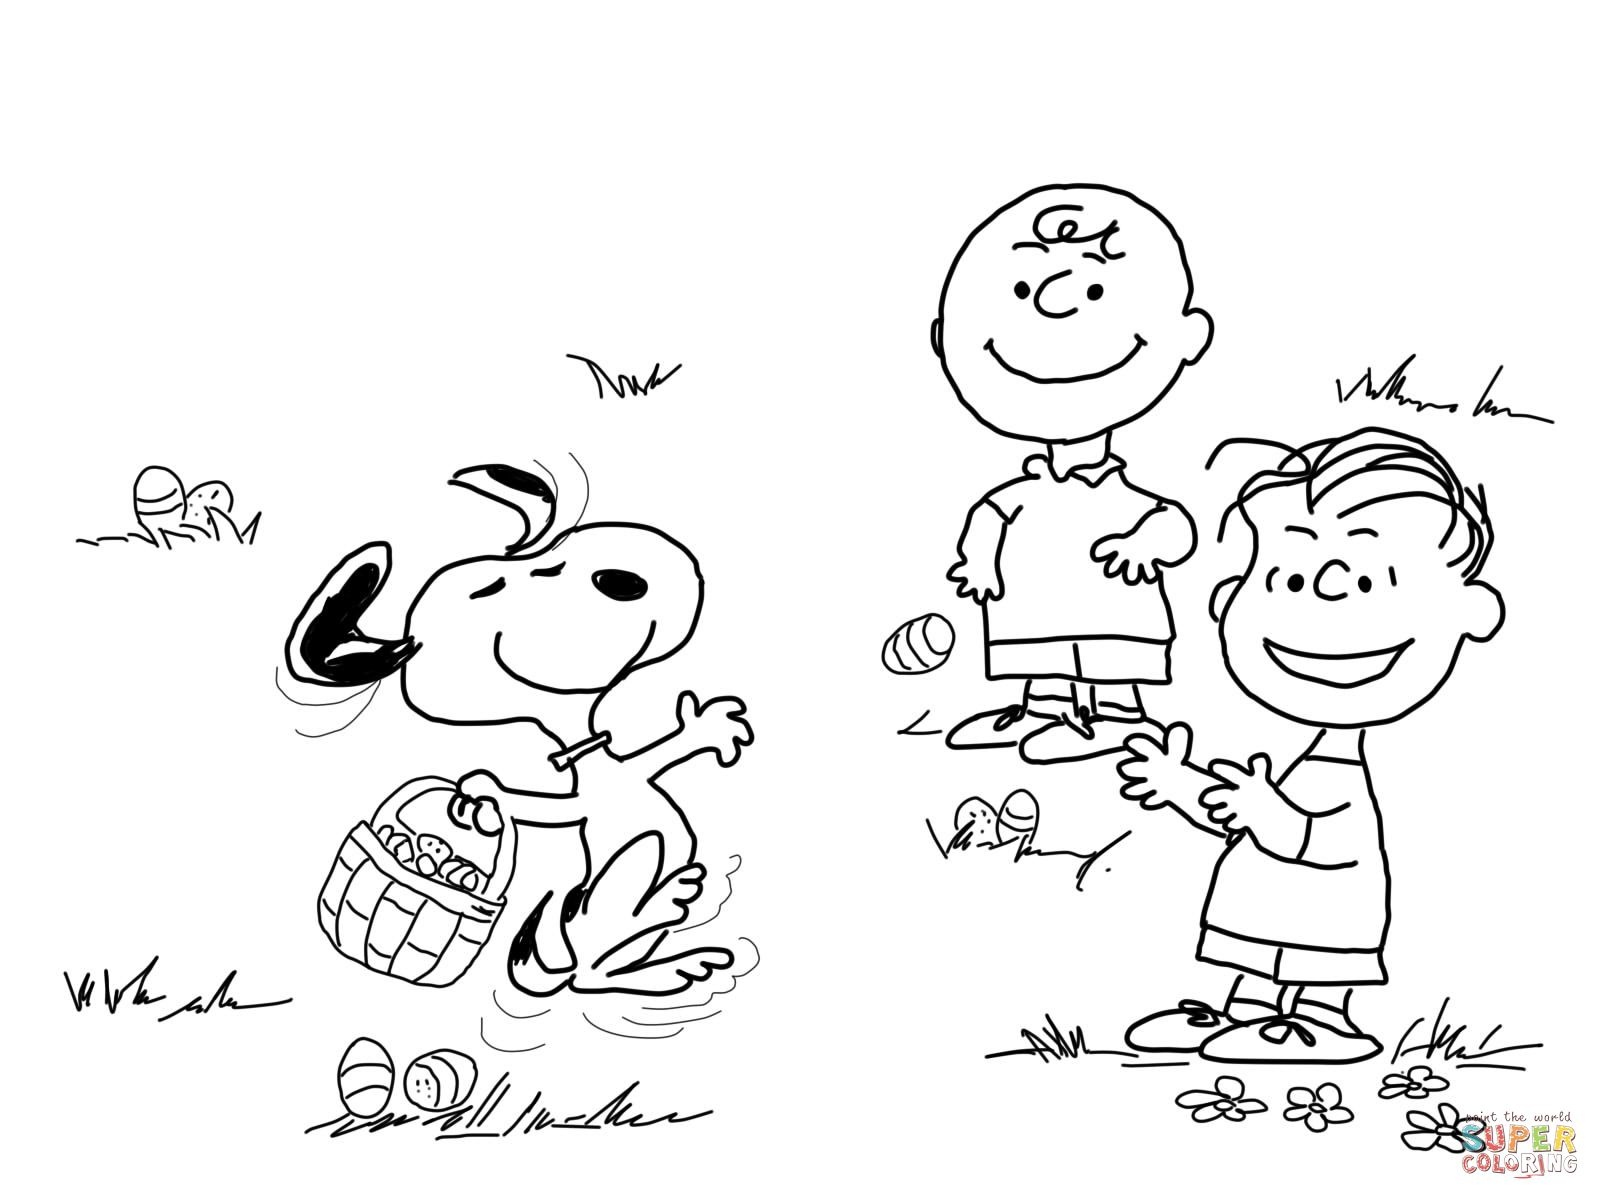 Pinaaron Mickelburough On Aaron | Easter Coloring Pages - Free Printable Charlie Brown Halloween Coloring Pages